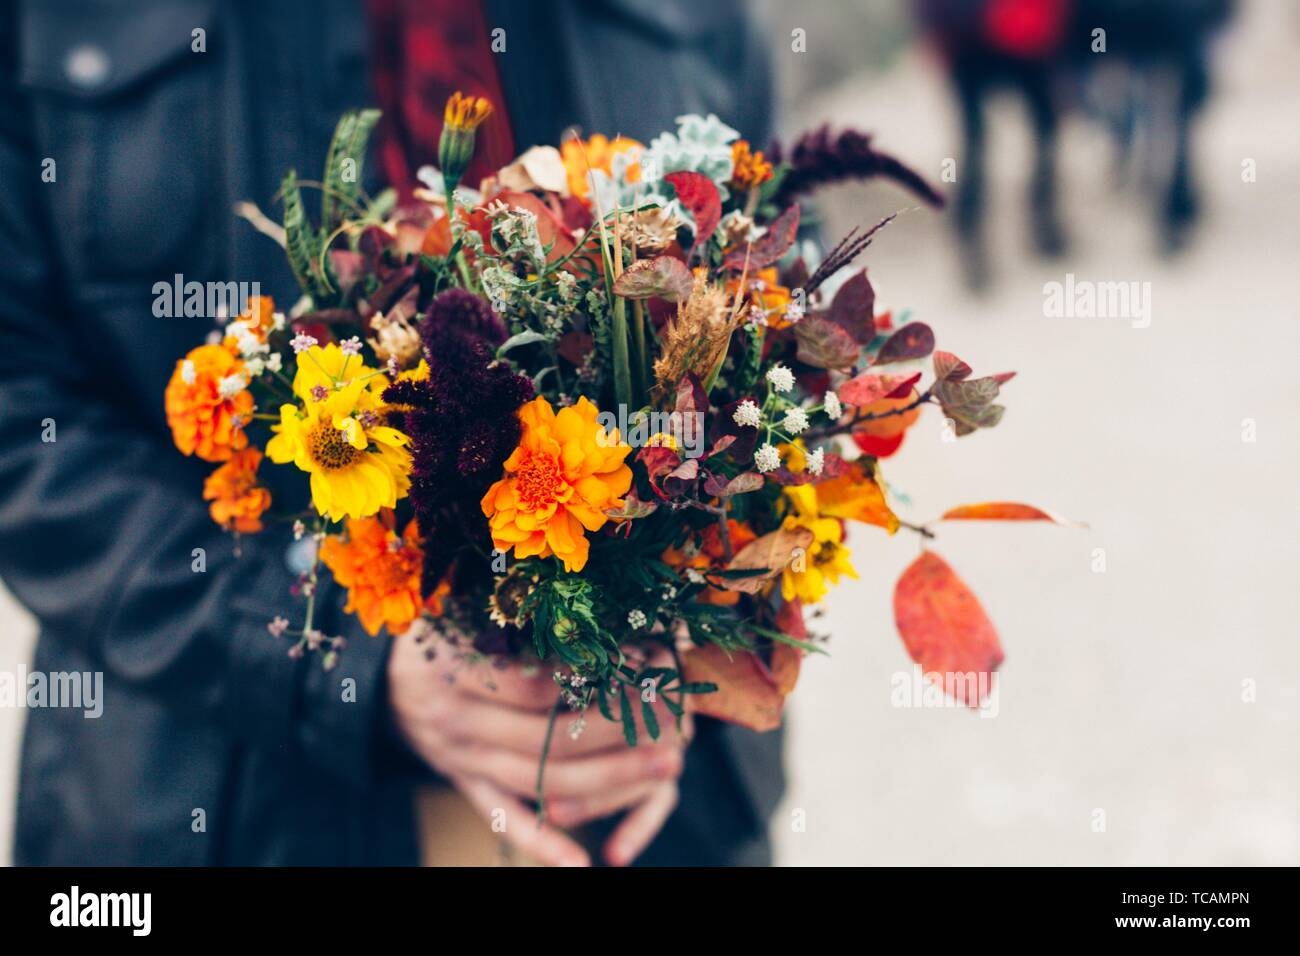 Wedding Bouquet In A Bright Autumn Style In The Hands Of The Groom Marigold Flowers Design Stock Photo Alamy